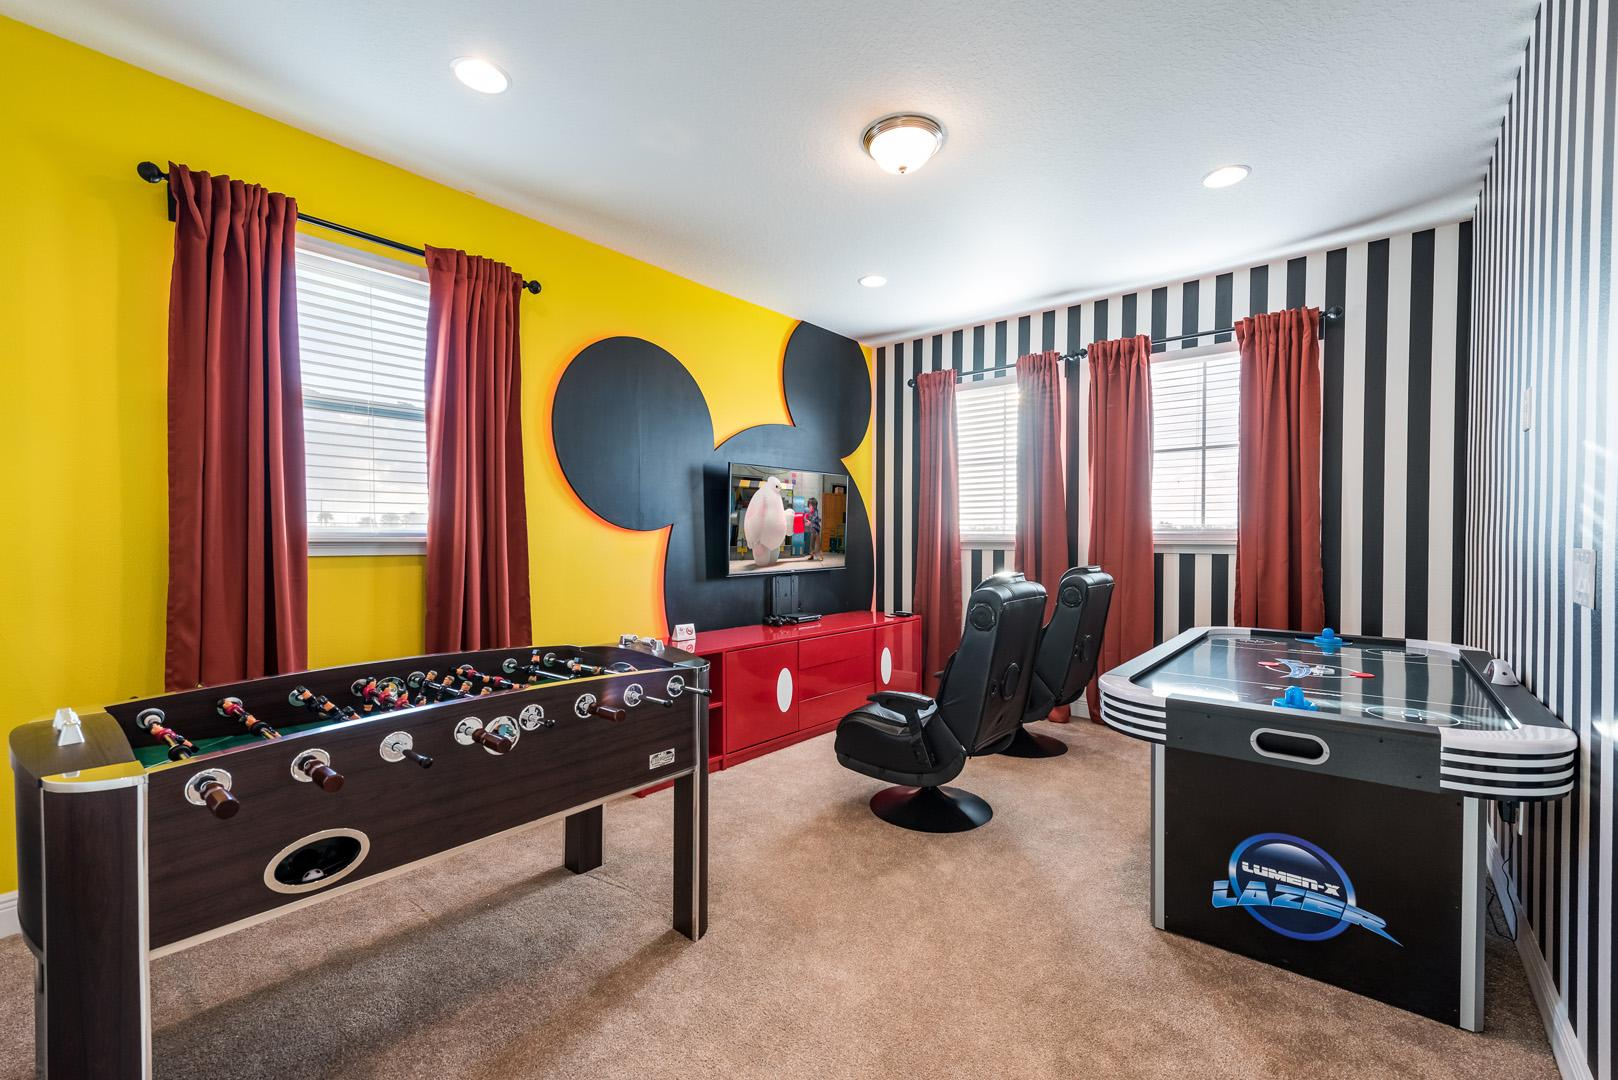 Property Image 1 - Luxurious Home with Game Room near Disney